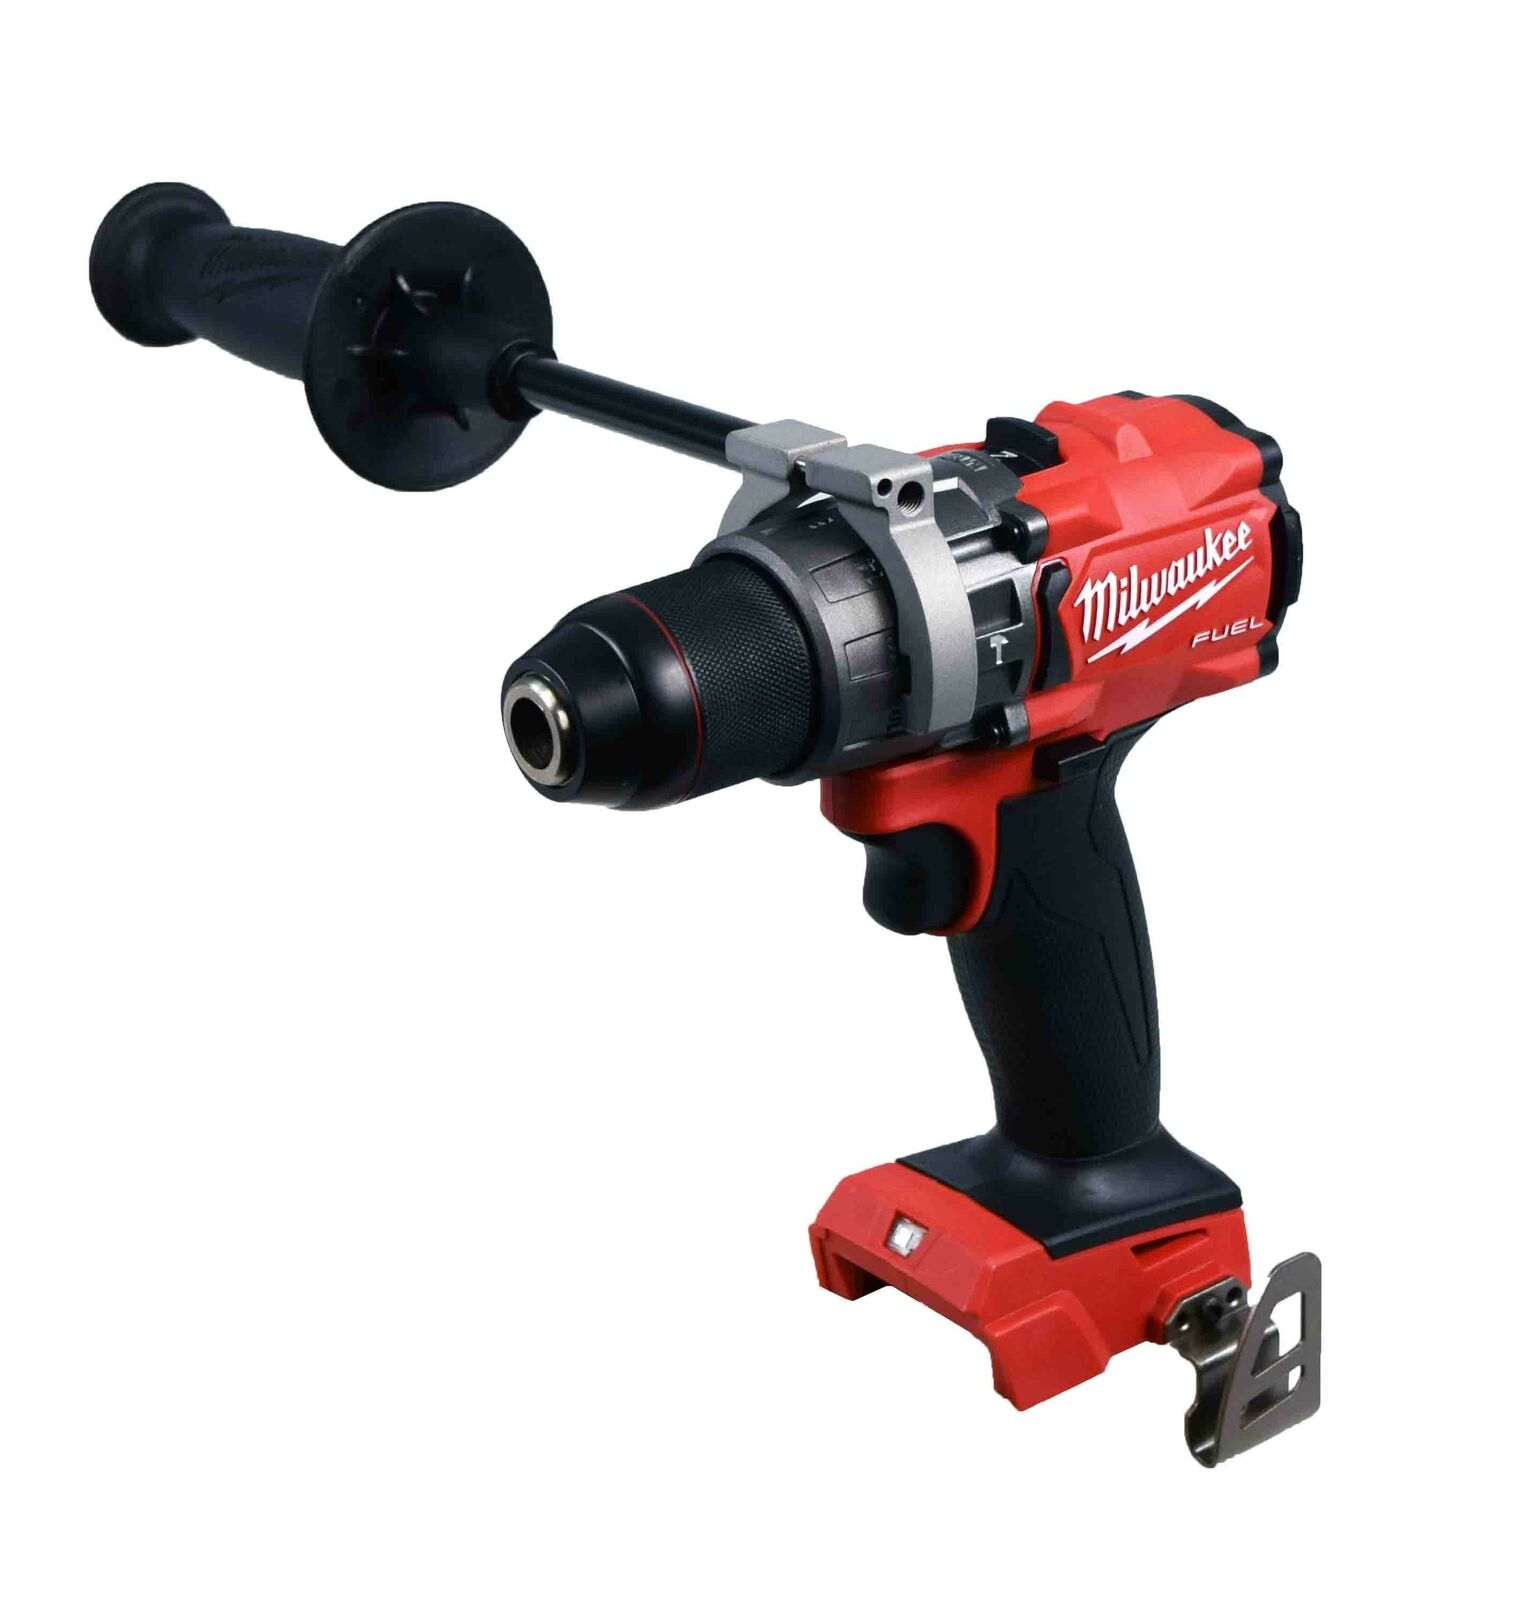 Milwaukee Fuel M18 2804-20 1/2-inch Cordless Brushless Hammer Drill - Bare Tool. Buy it now for 119.95